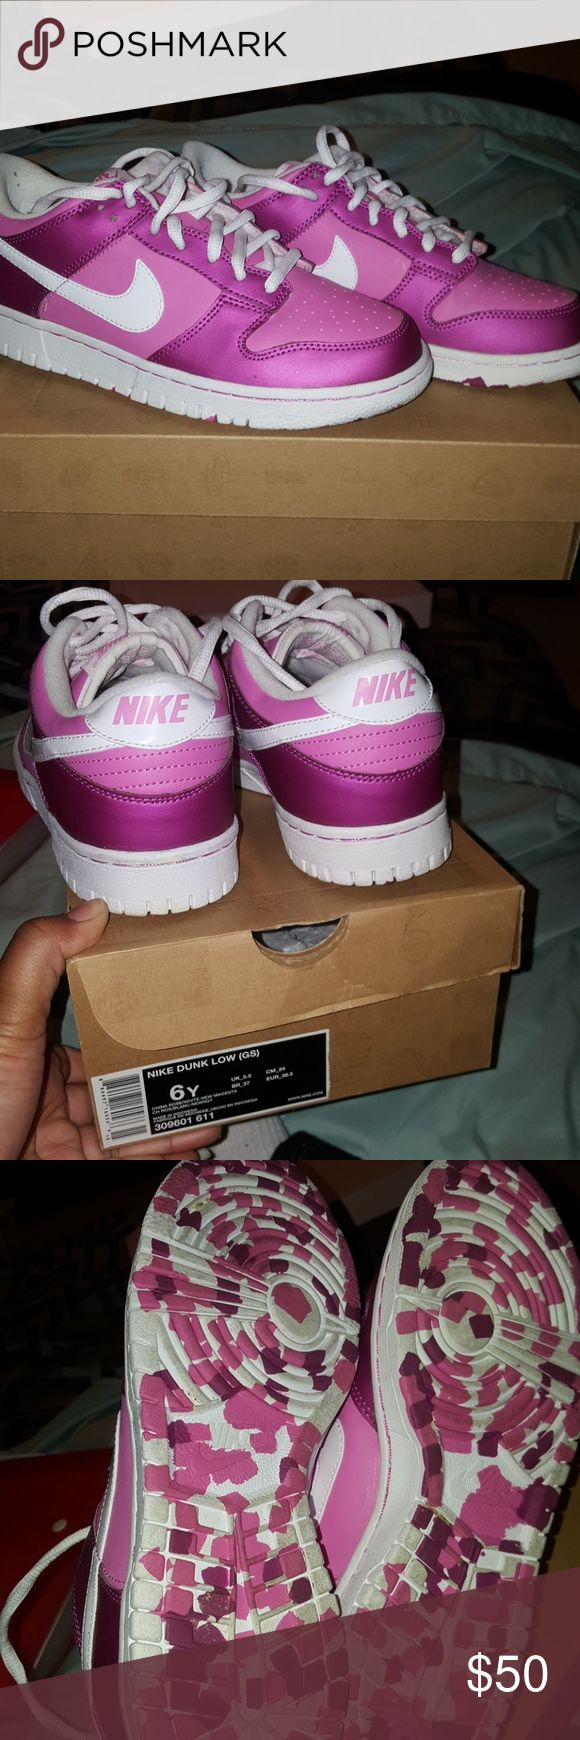 Nike Dunk Low (GS) Size 6Y Brand New in original box Nike Dunk Low (GS) Size 6Y Nike Shoes Sneakers